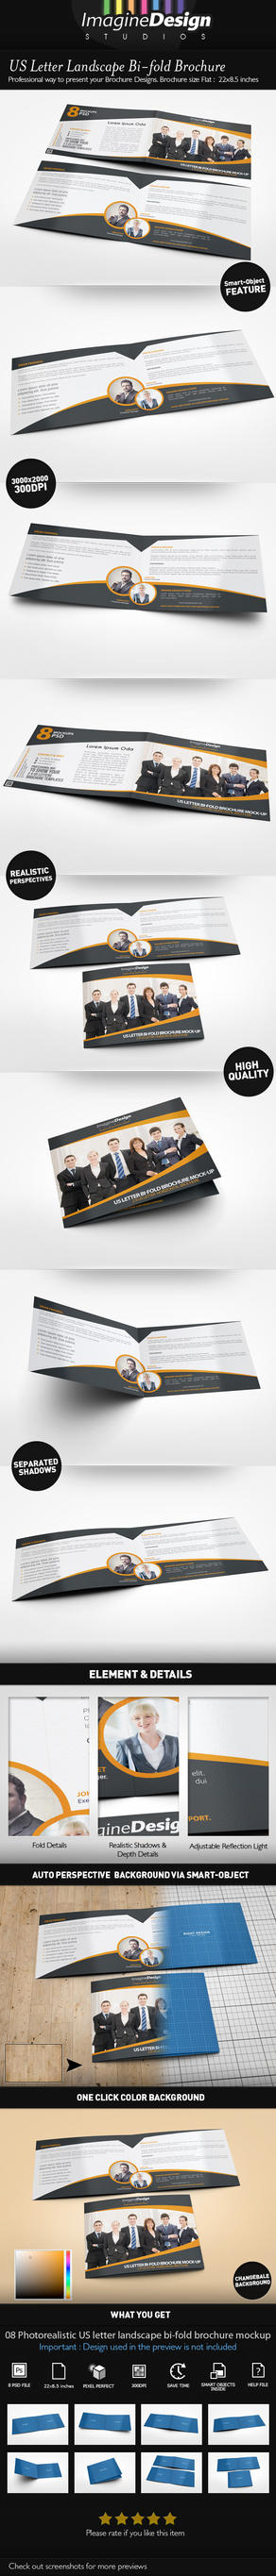 US Letter Landscape Bi-fold Brochure Mock-Up by idesignstudio